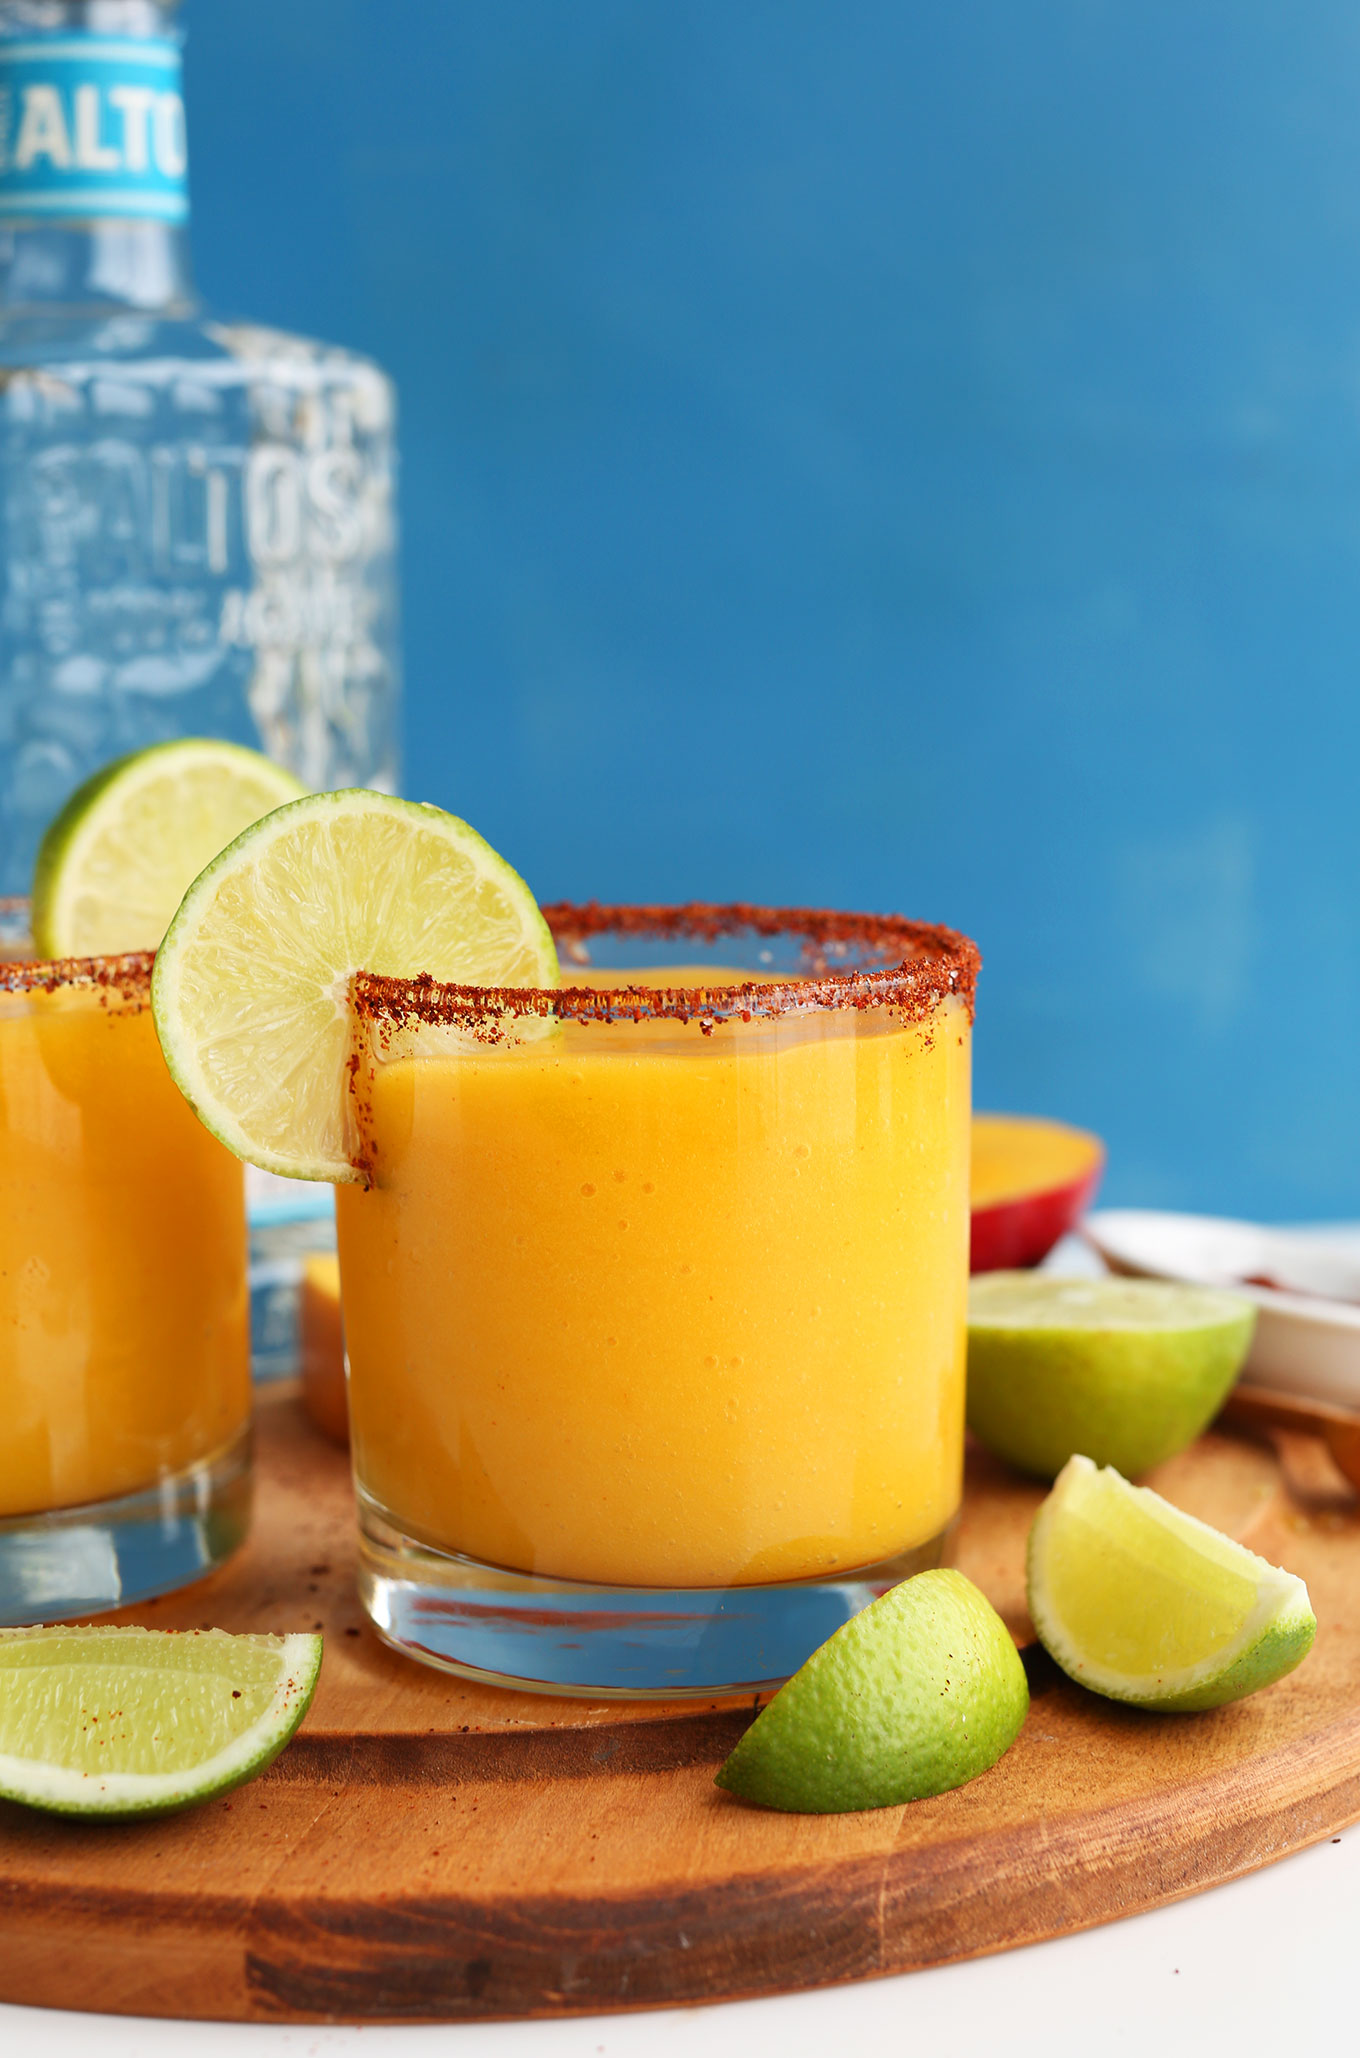 Glasses filled with our Mango Chili Lime Margaritas with a chili powder and fresh lime rim